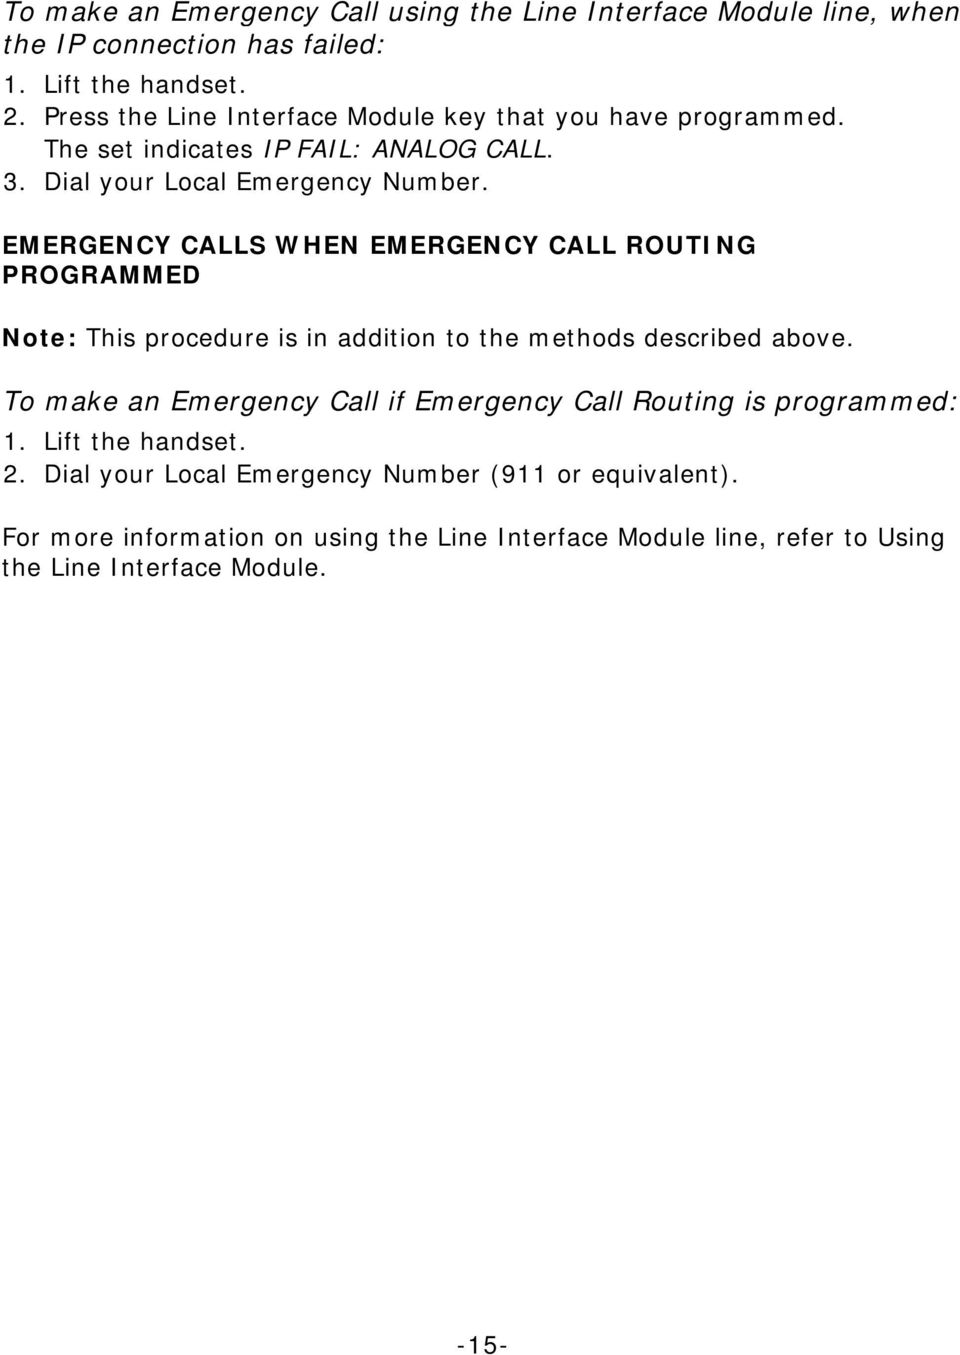 EMERGENCY CALLS WHEN EMERGENCY CALL ROUTING PROGRAMMED Note: This procedure is in addition to the methods described above.